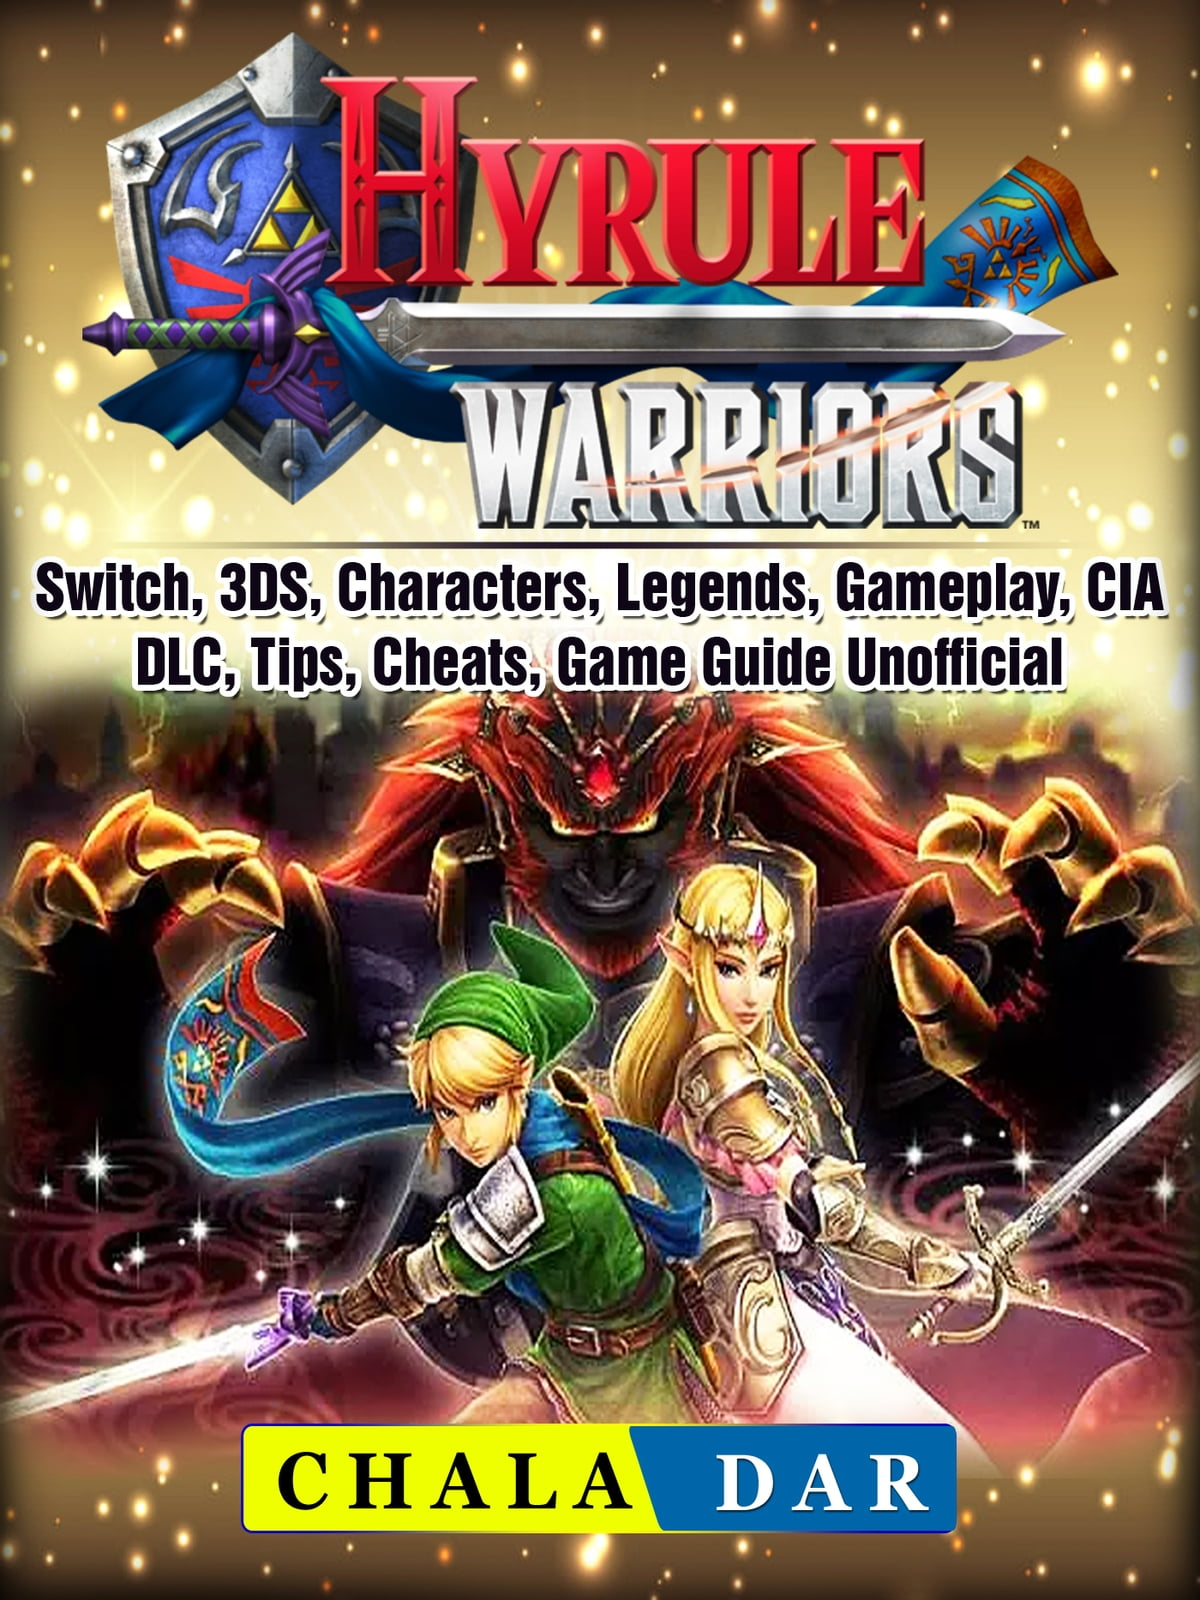 Hyrule Warriors, Switch, 3DS, Characters, Legends, Gameplay, CIA, DLC,  Tips, Cheats, Game Guide Unofficial 電子書籍 by Chala Dar - Rakuten Kobo